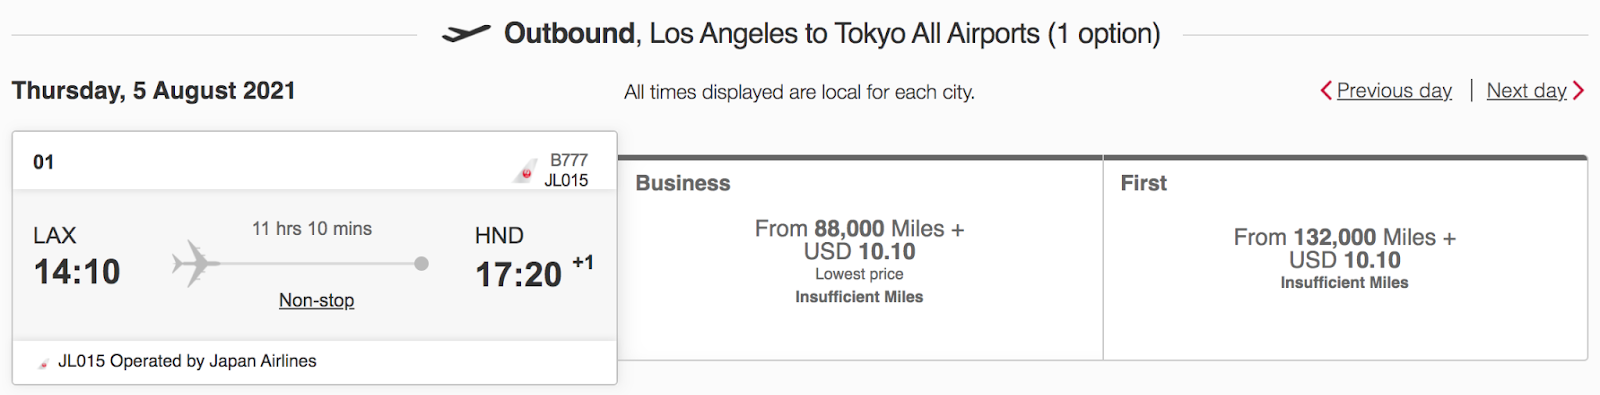 Outbound flight from Los Angeles to Tokyo